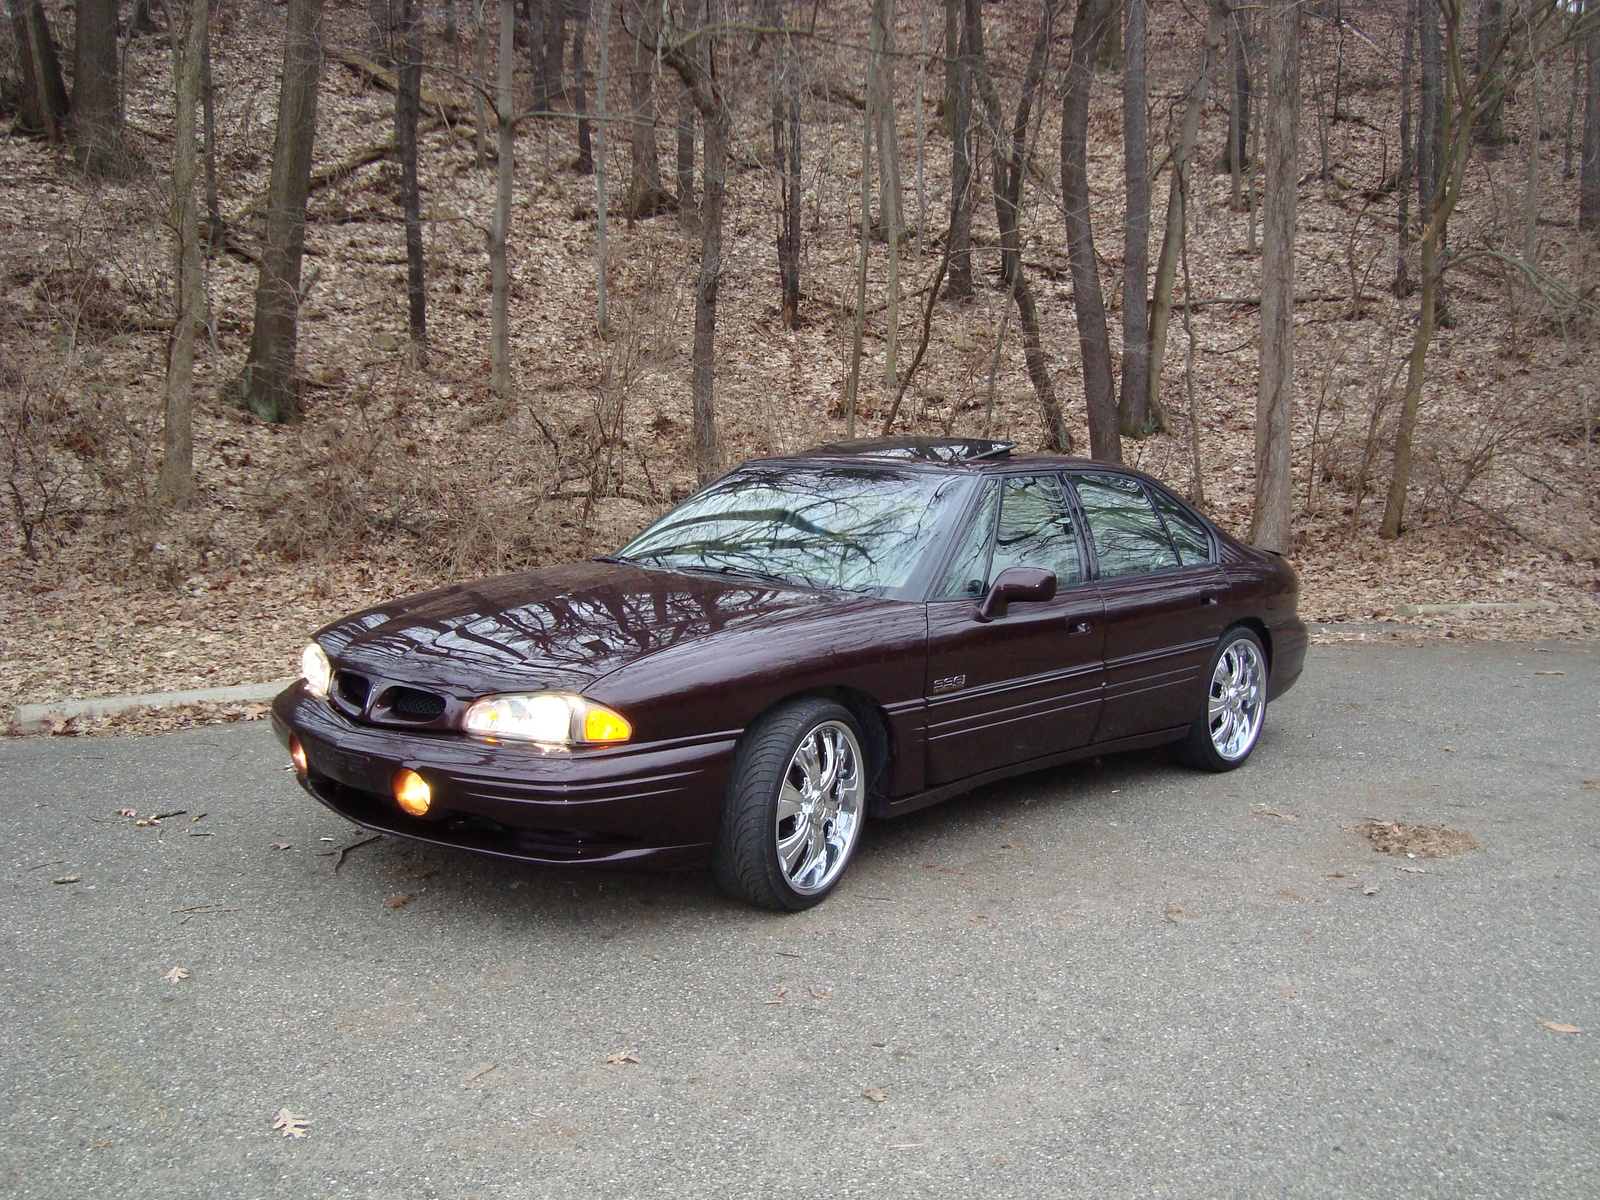 1997 Pontiac Bonneville Ii Pictures Information And Specs Auto 97 Monte Carlo Engine Diagram 10